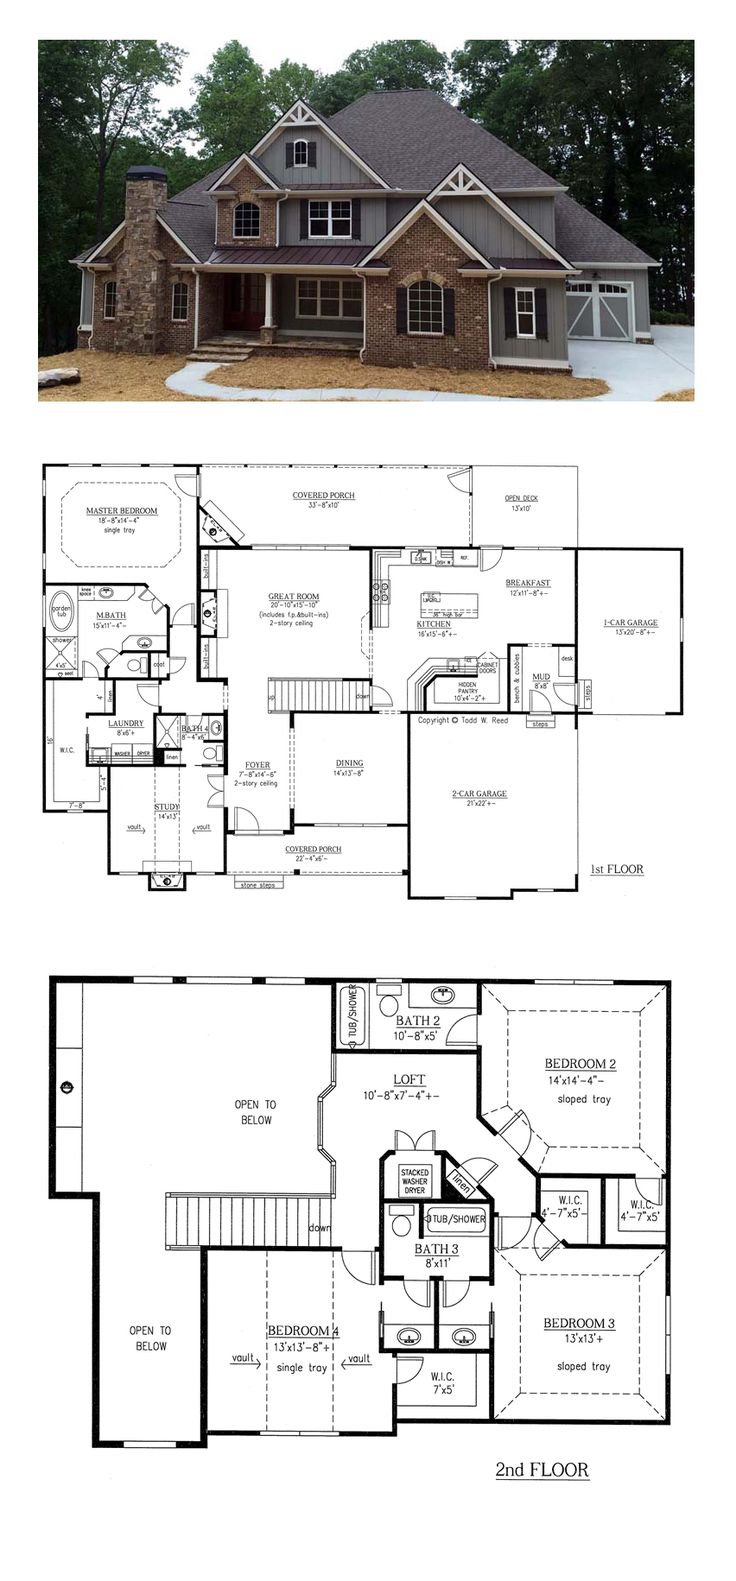 Astounding 17 Best Ideas About House Plans On Pinterest Country House Plans Largest Home Design Picture Inspirations Pitcheantrous